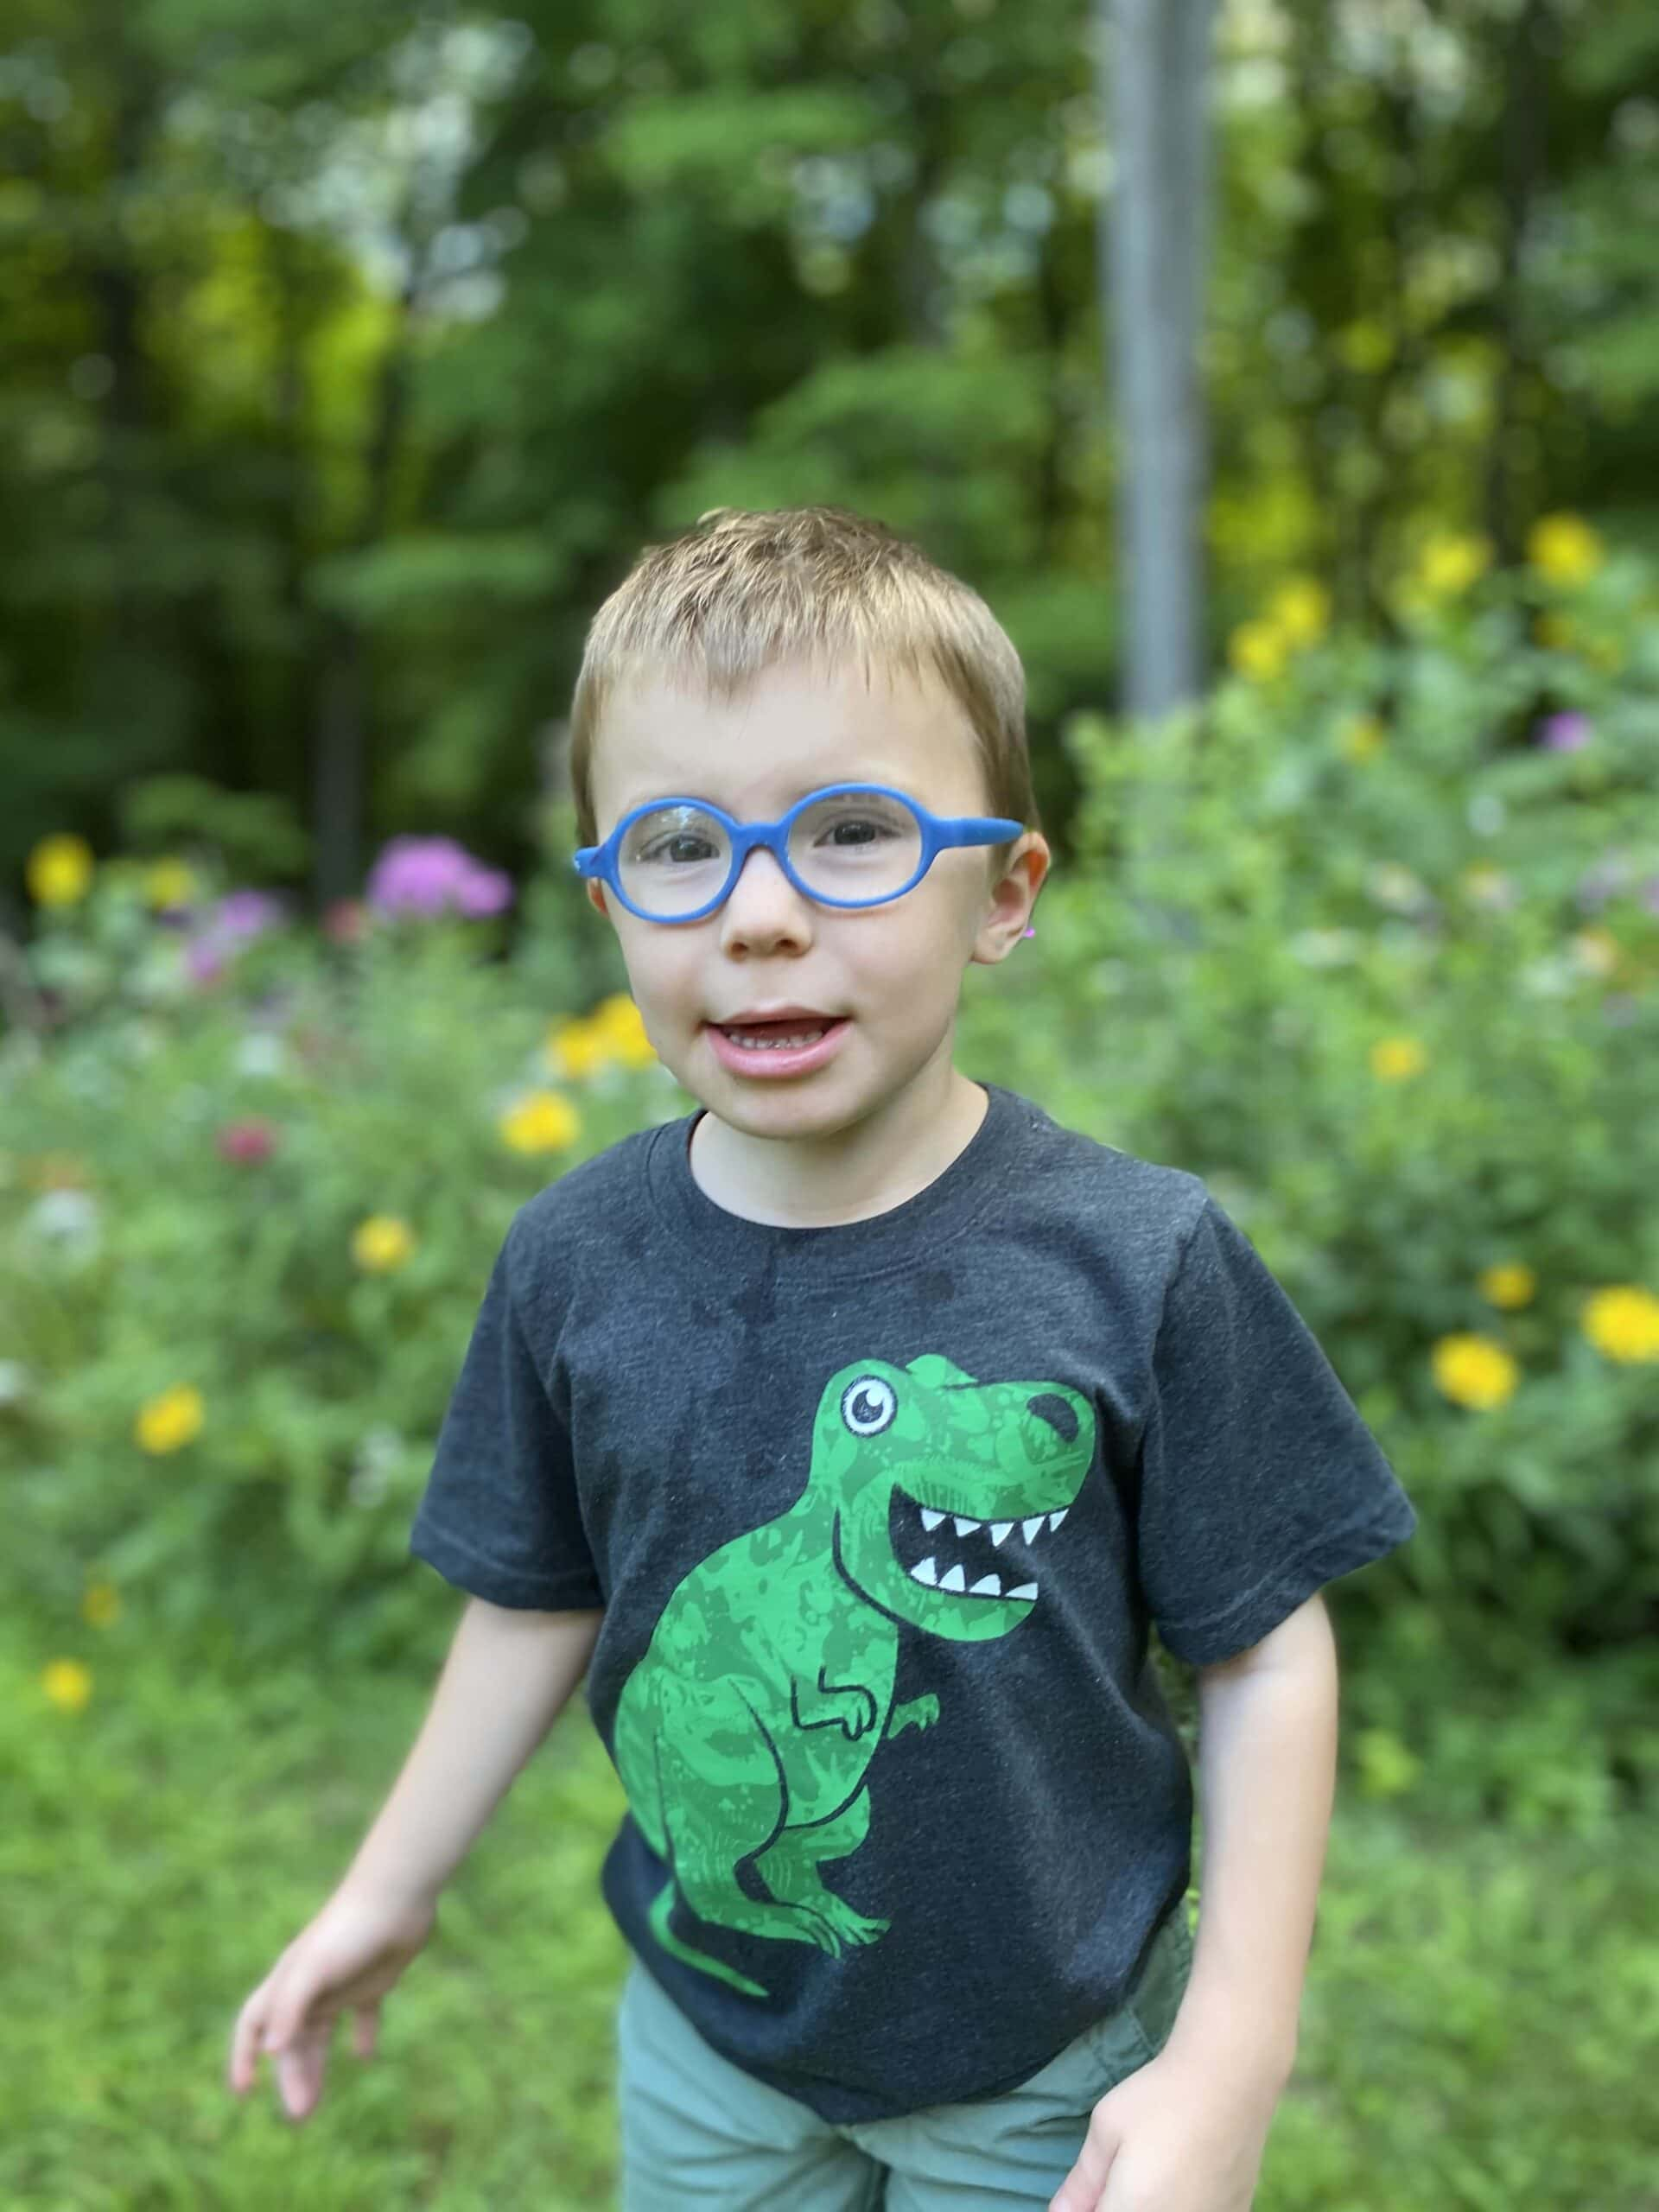 Small kid with glasses, smiling at the camera